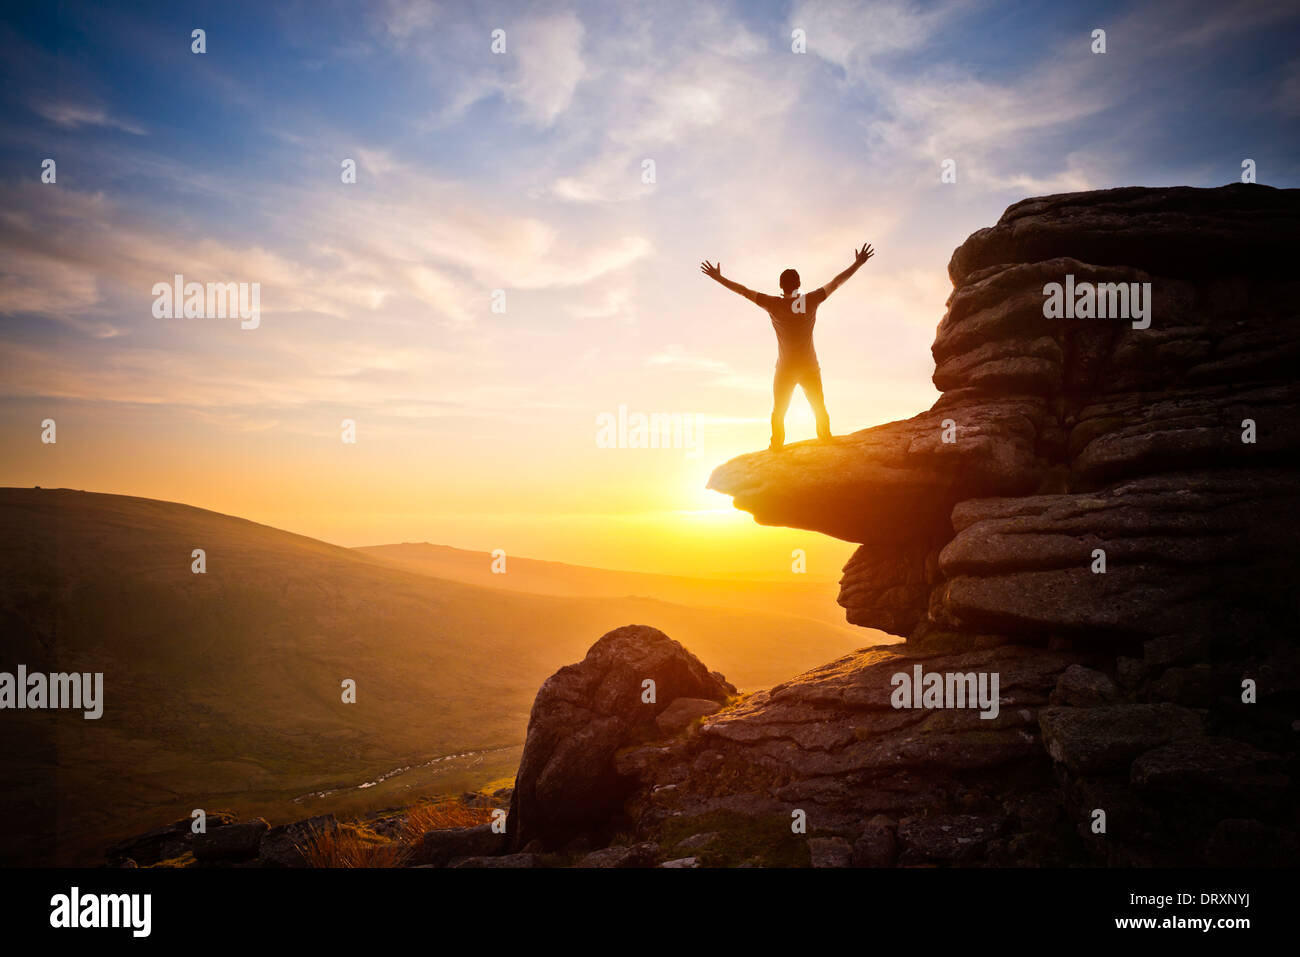 A person expressing freedom - reaching up into the sky against a sunset. - Stock Image